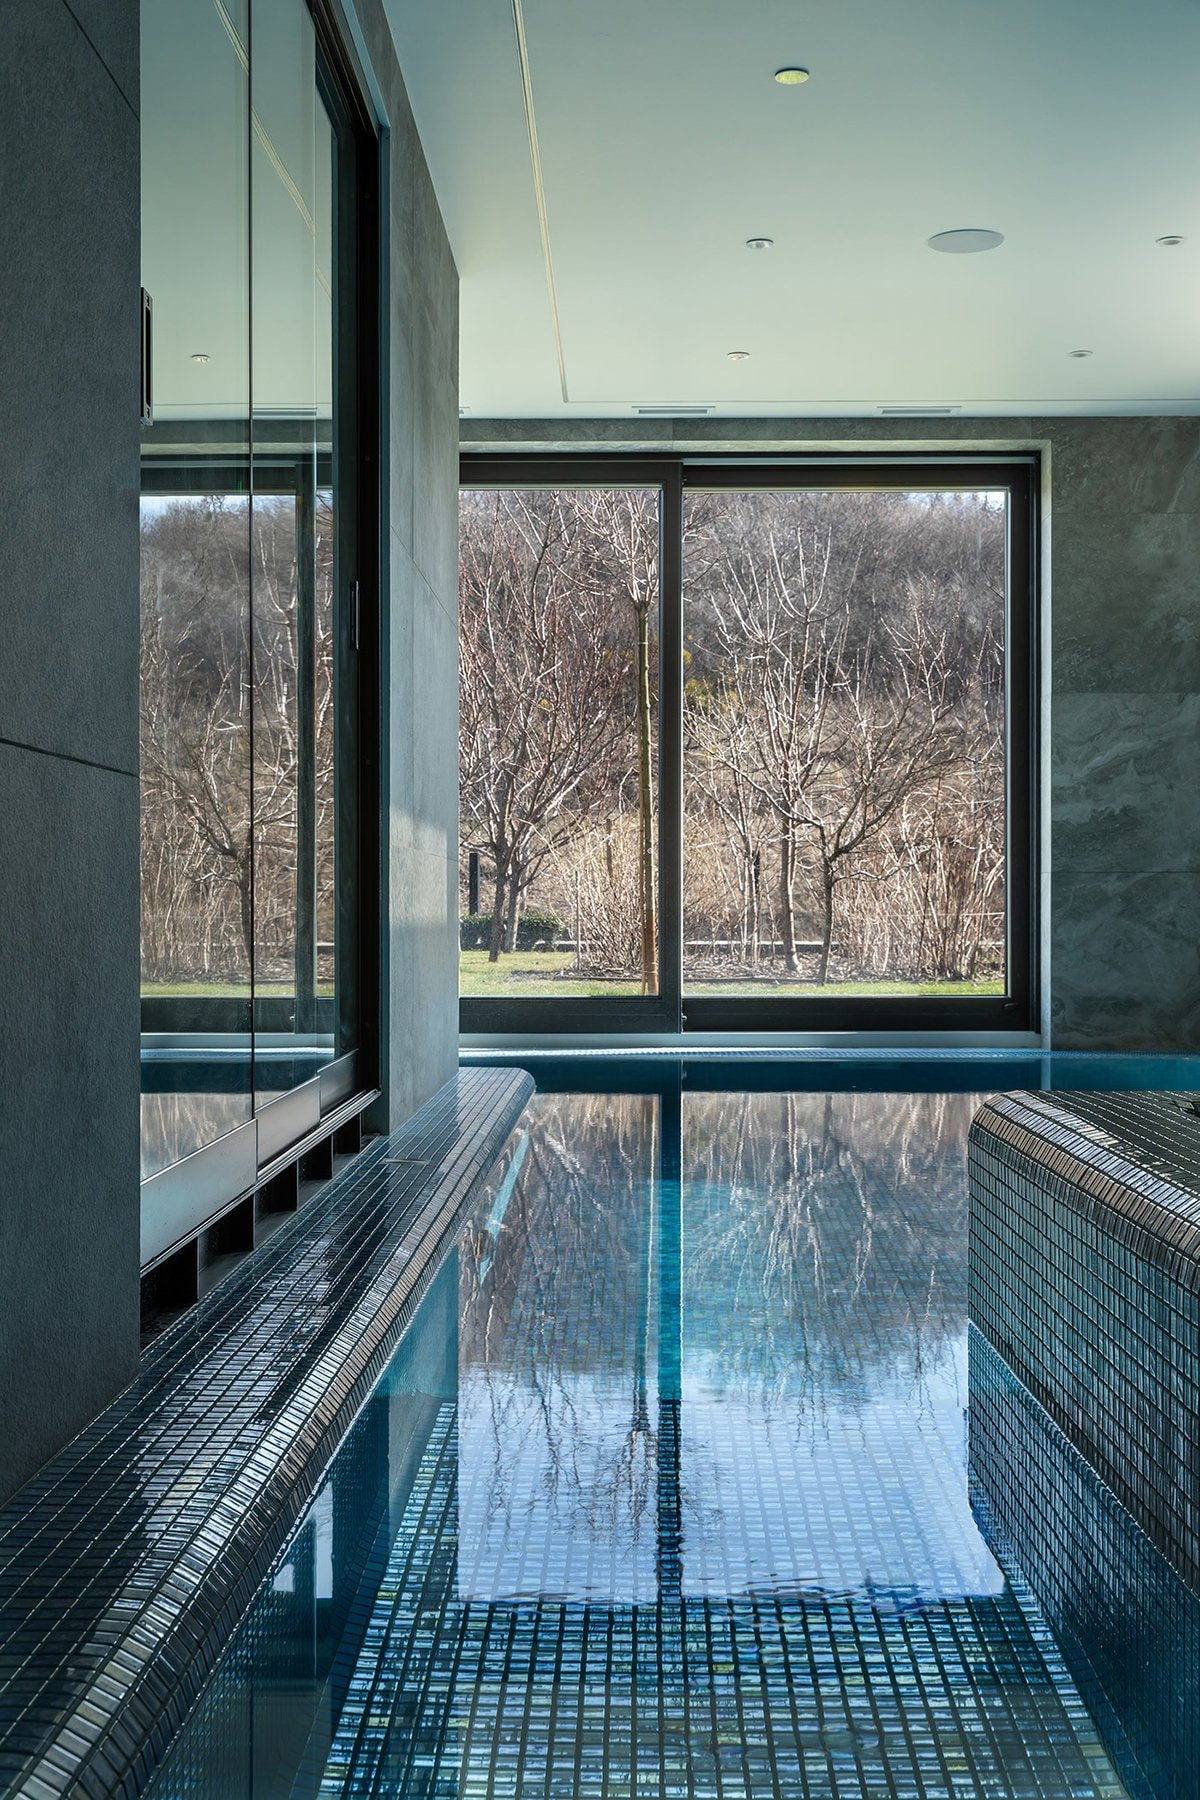 This indoor swimming pool is separated from the living room with just a glass wall. This area has other glass walls that show a lovely view of the landscape outside.